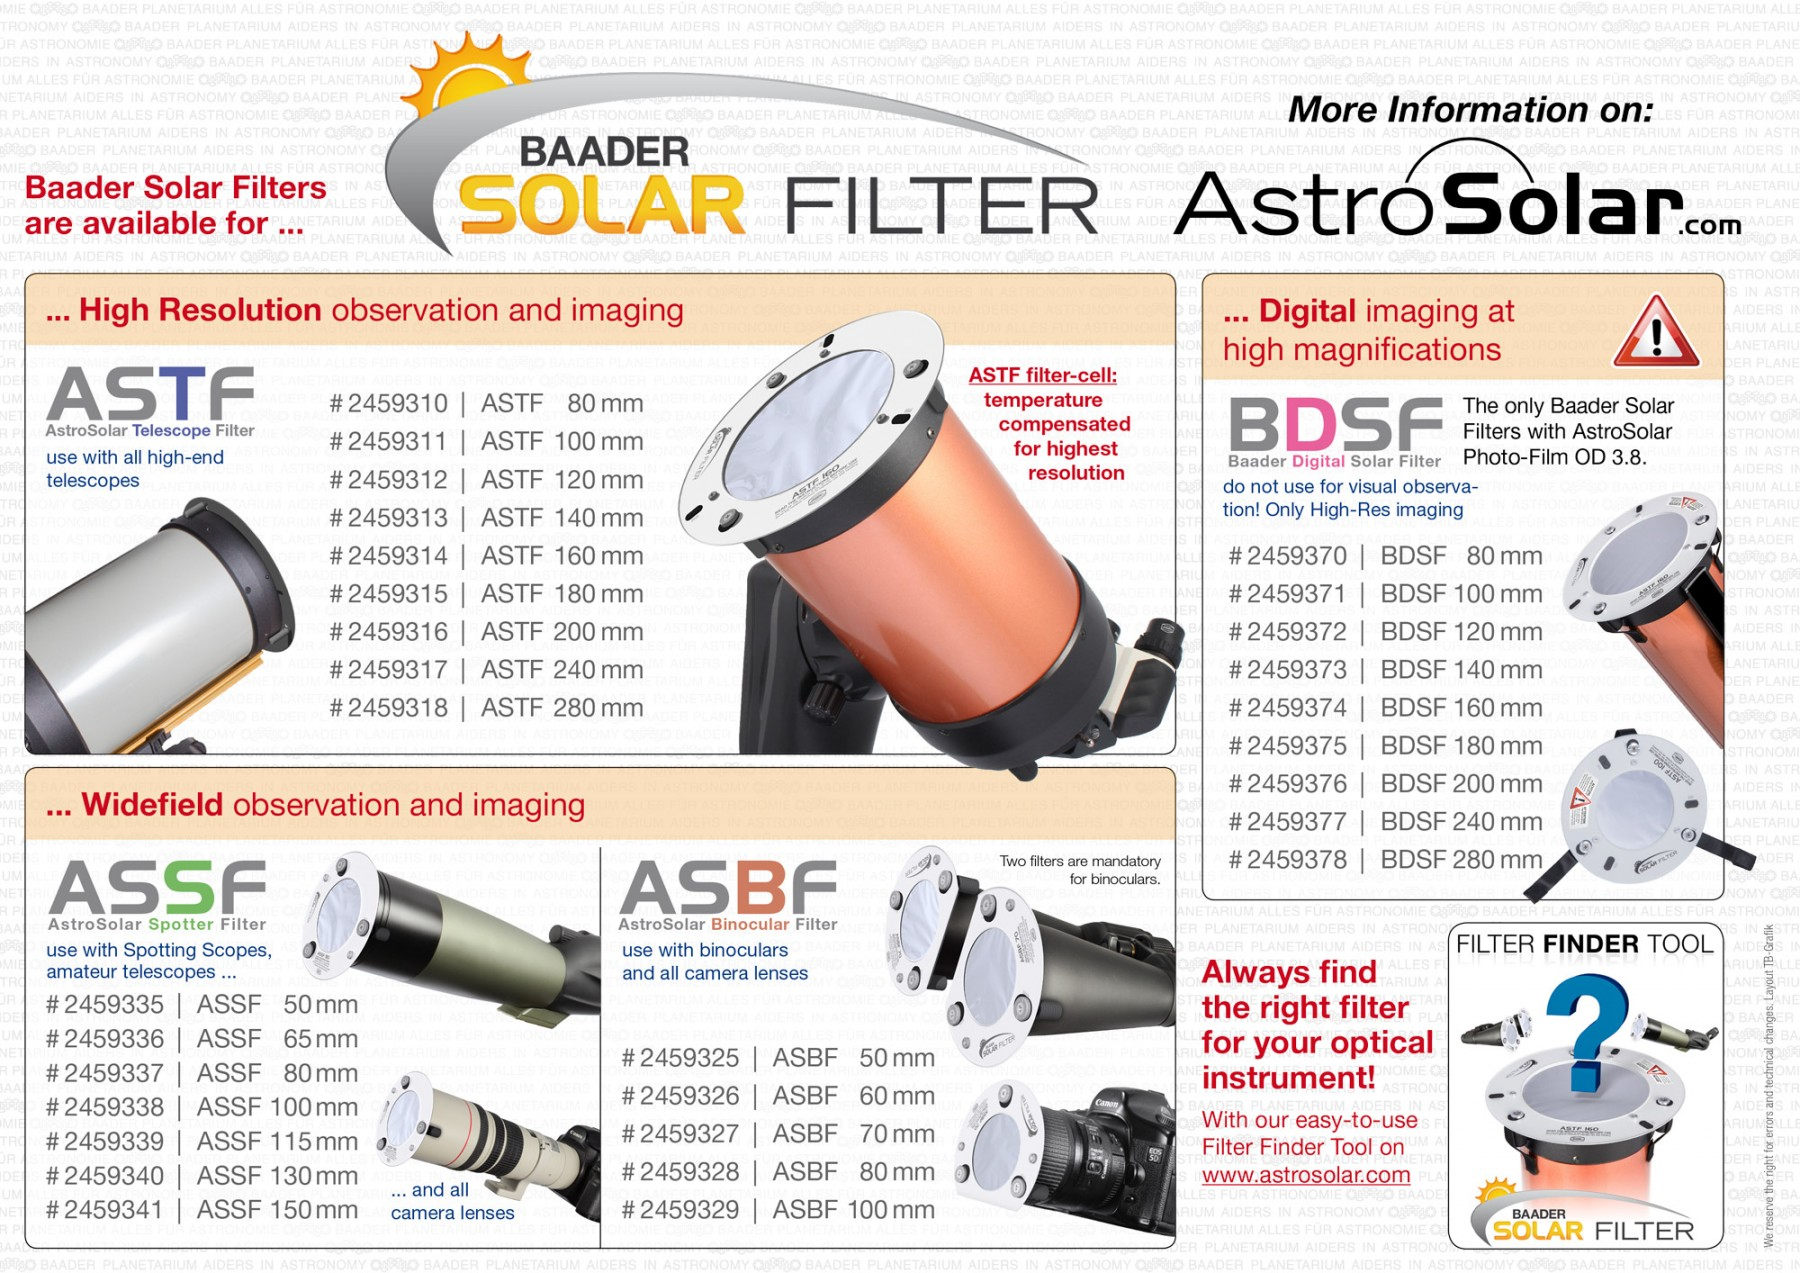 Baader Planetarium 100mm AstroSolar Telescope Filter